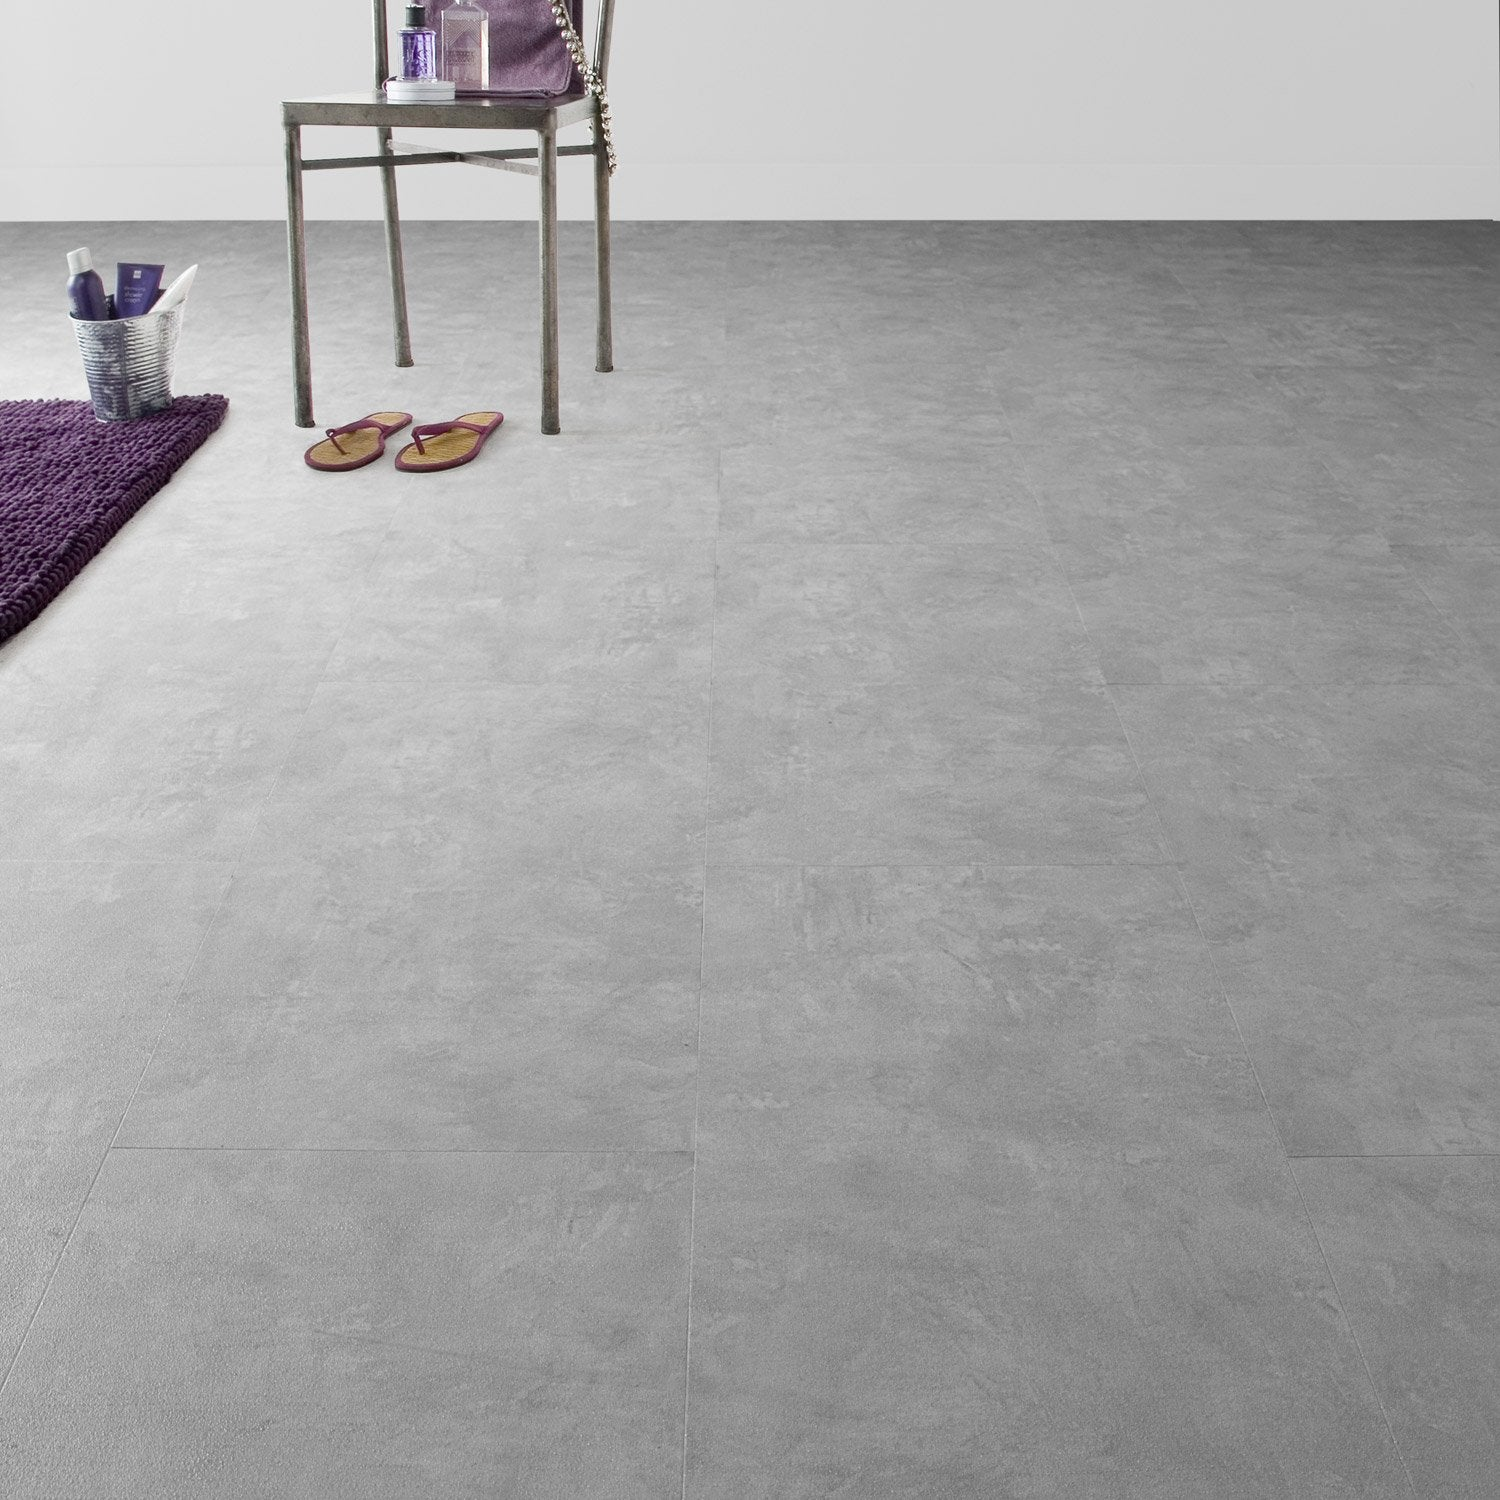 Dalle pvc clipsable gris industry clear senso lock gerflor for Dalles pvc clipsables gerflor